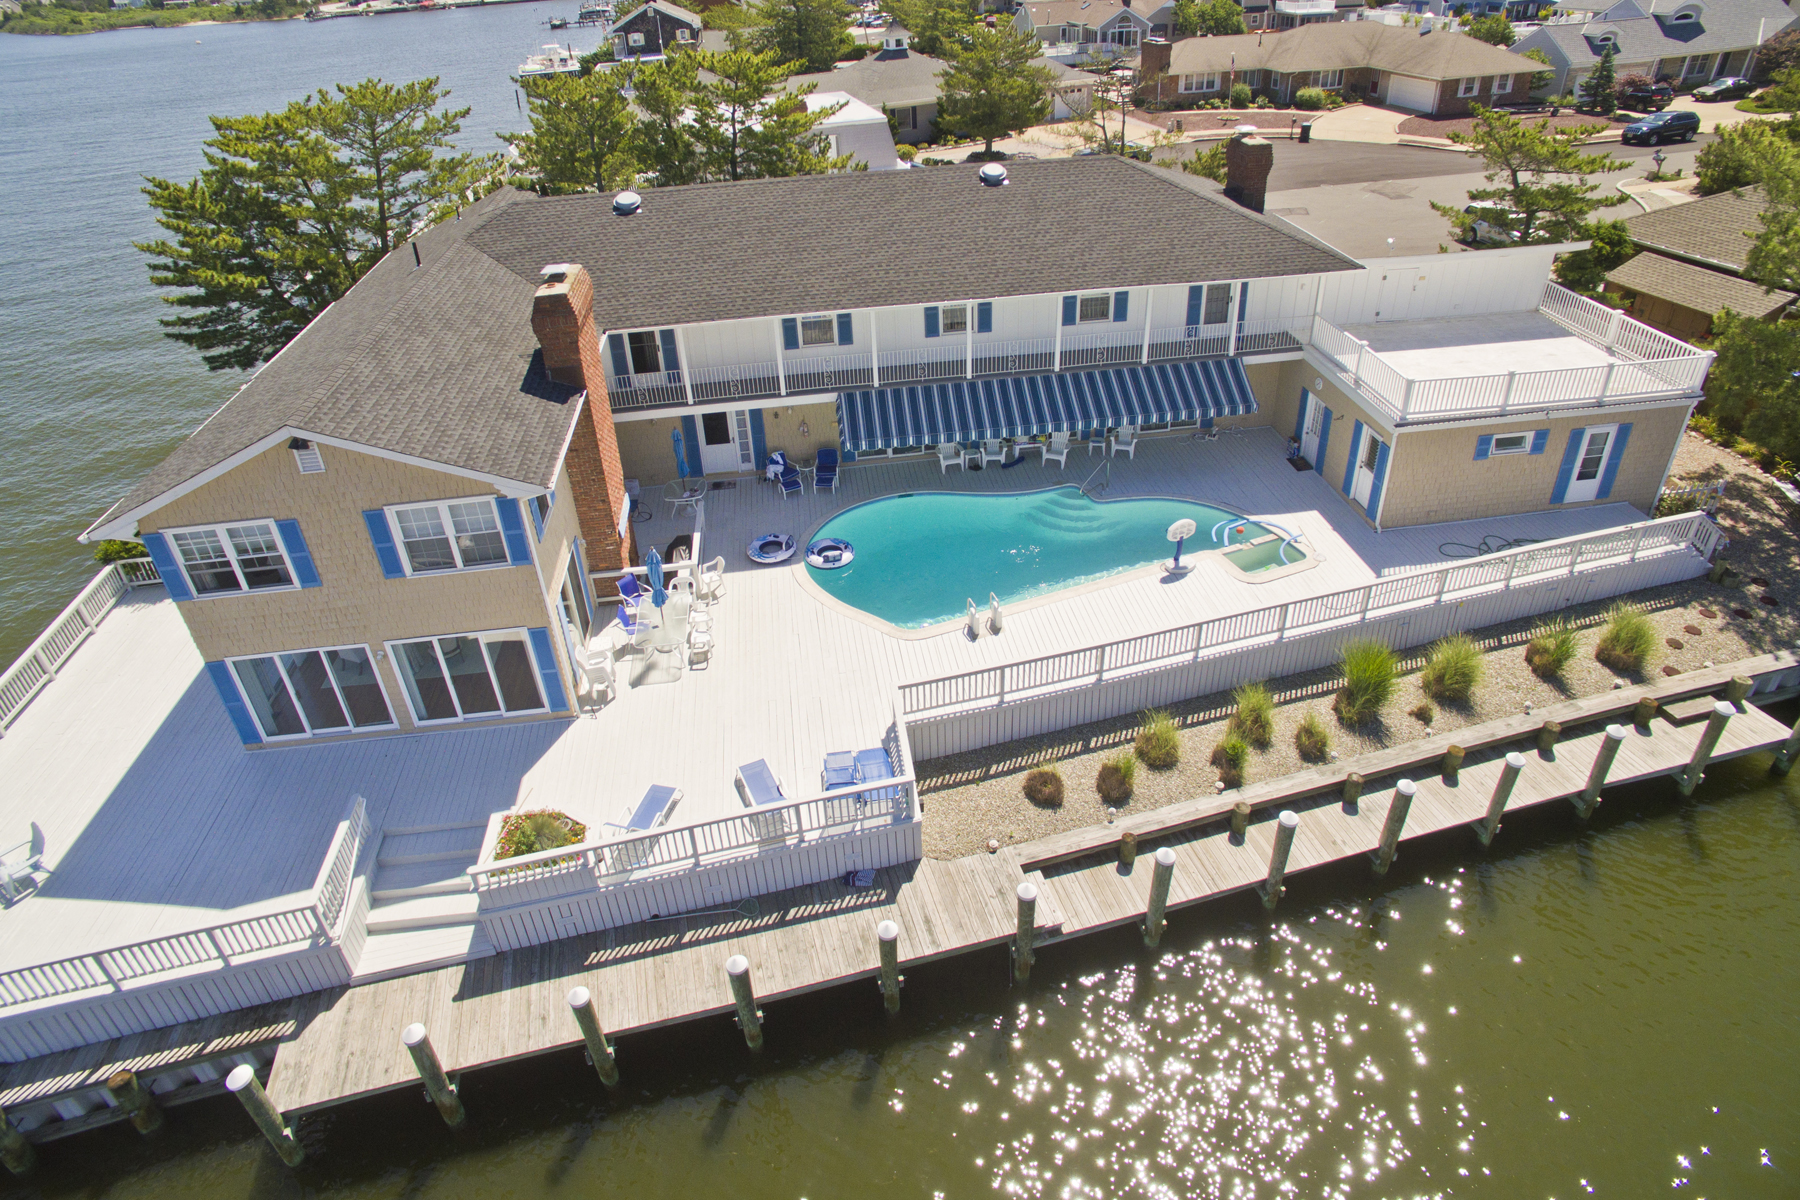 Maison unifamiliale pour l Vente à Magnificent Mantoloking Shores Waterfront 195 Buccaneer Way Mantoloking, New Jersey, 08739 États-Unis